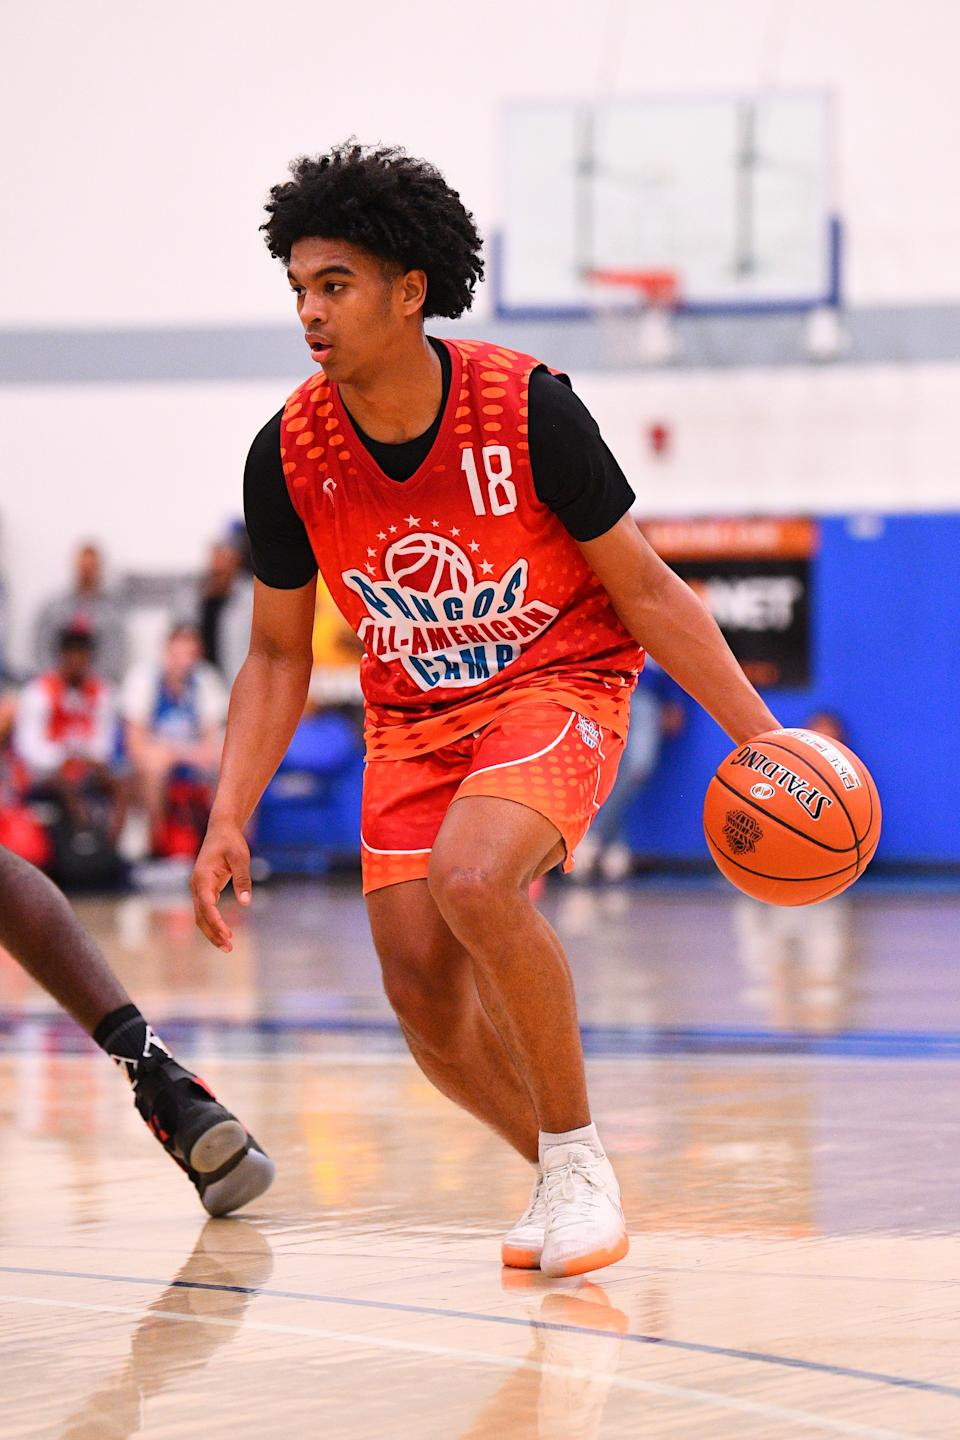 Skyy Clark from Heritage Christian dribbles up the court during the Pangos All-American Camp on June 2, 2019 at Cerritos College in Norwalk, CA. (Photo by Brian Rothmuller/Icon Sportswire via Getty Images)